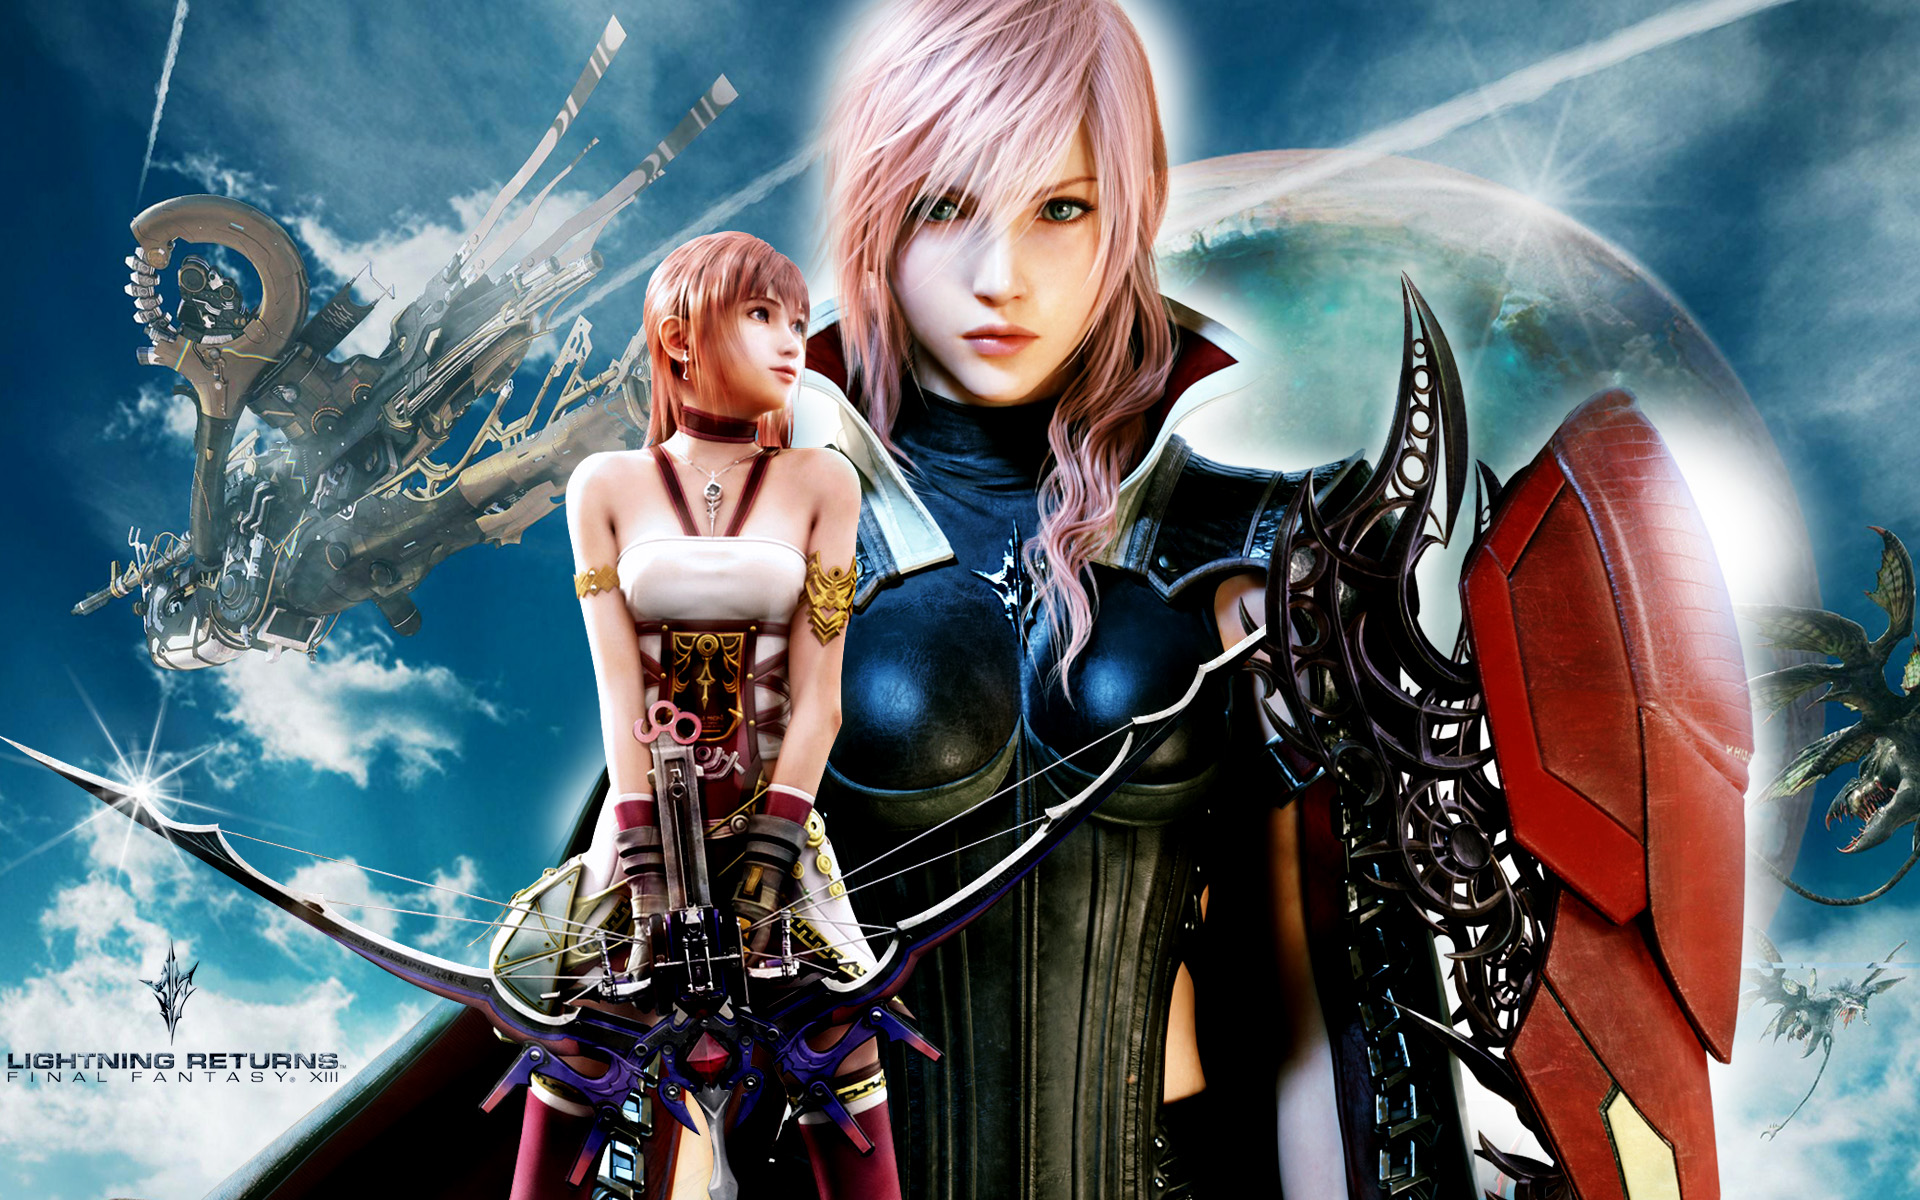 Final fantasy xiii lightning returns costumes - photo#12